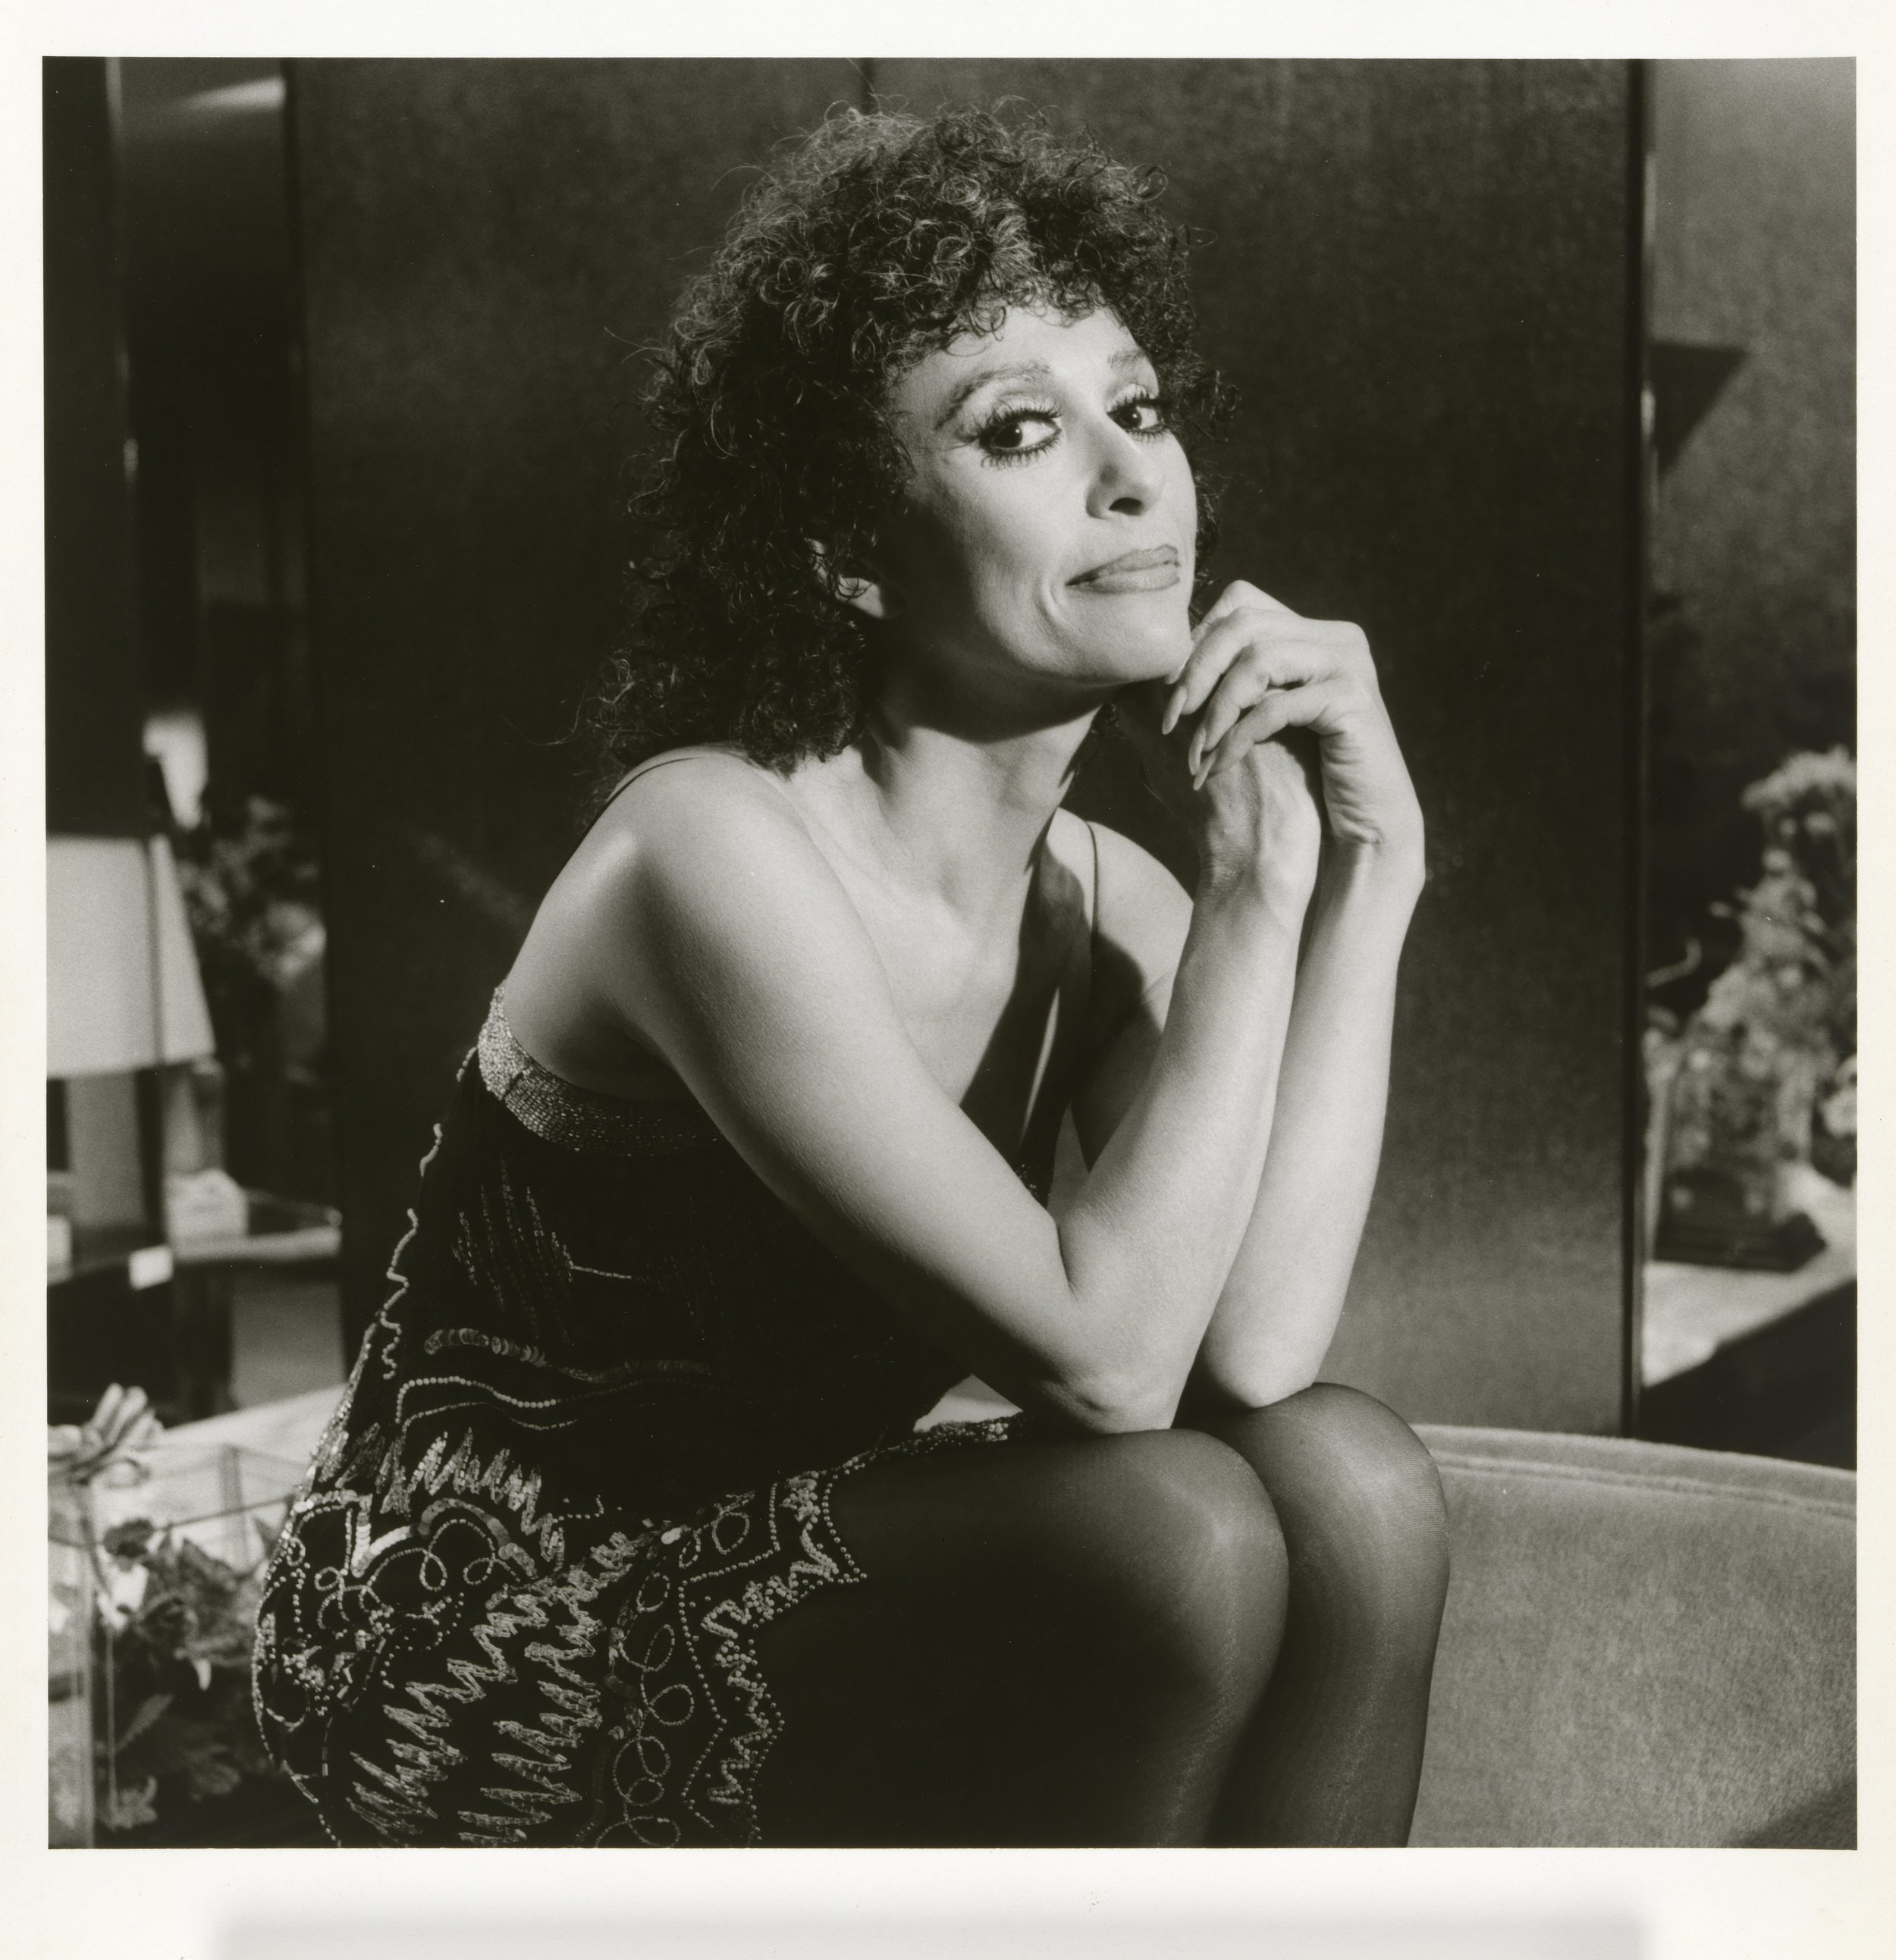 Rita Moreno    by ADÁL    Gelatin silver print    1984    National Portrait Gallery, Smithsonian Institution    © 1984 Adál